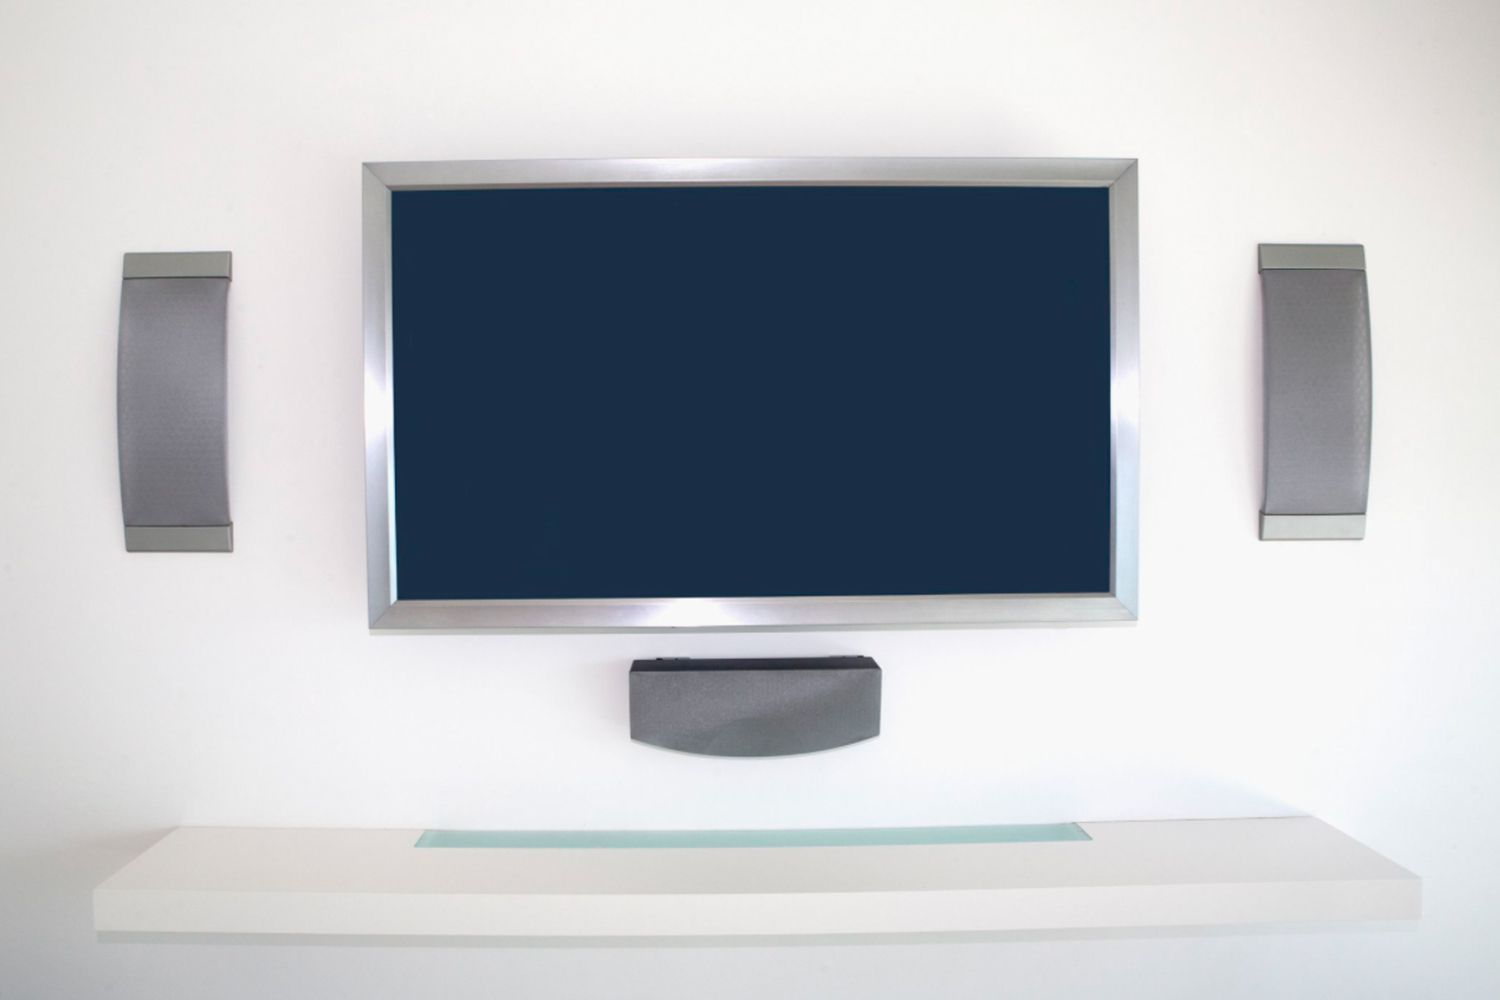 In-wall speakers mounted around a television